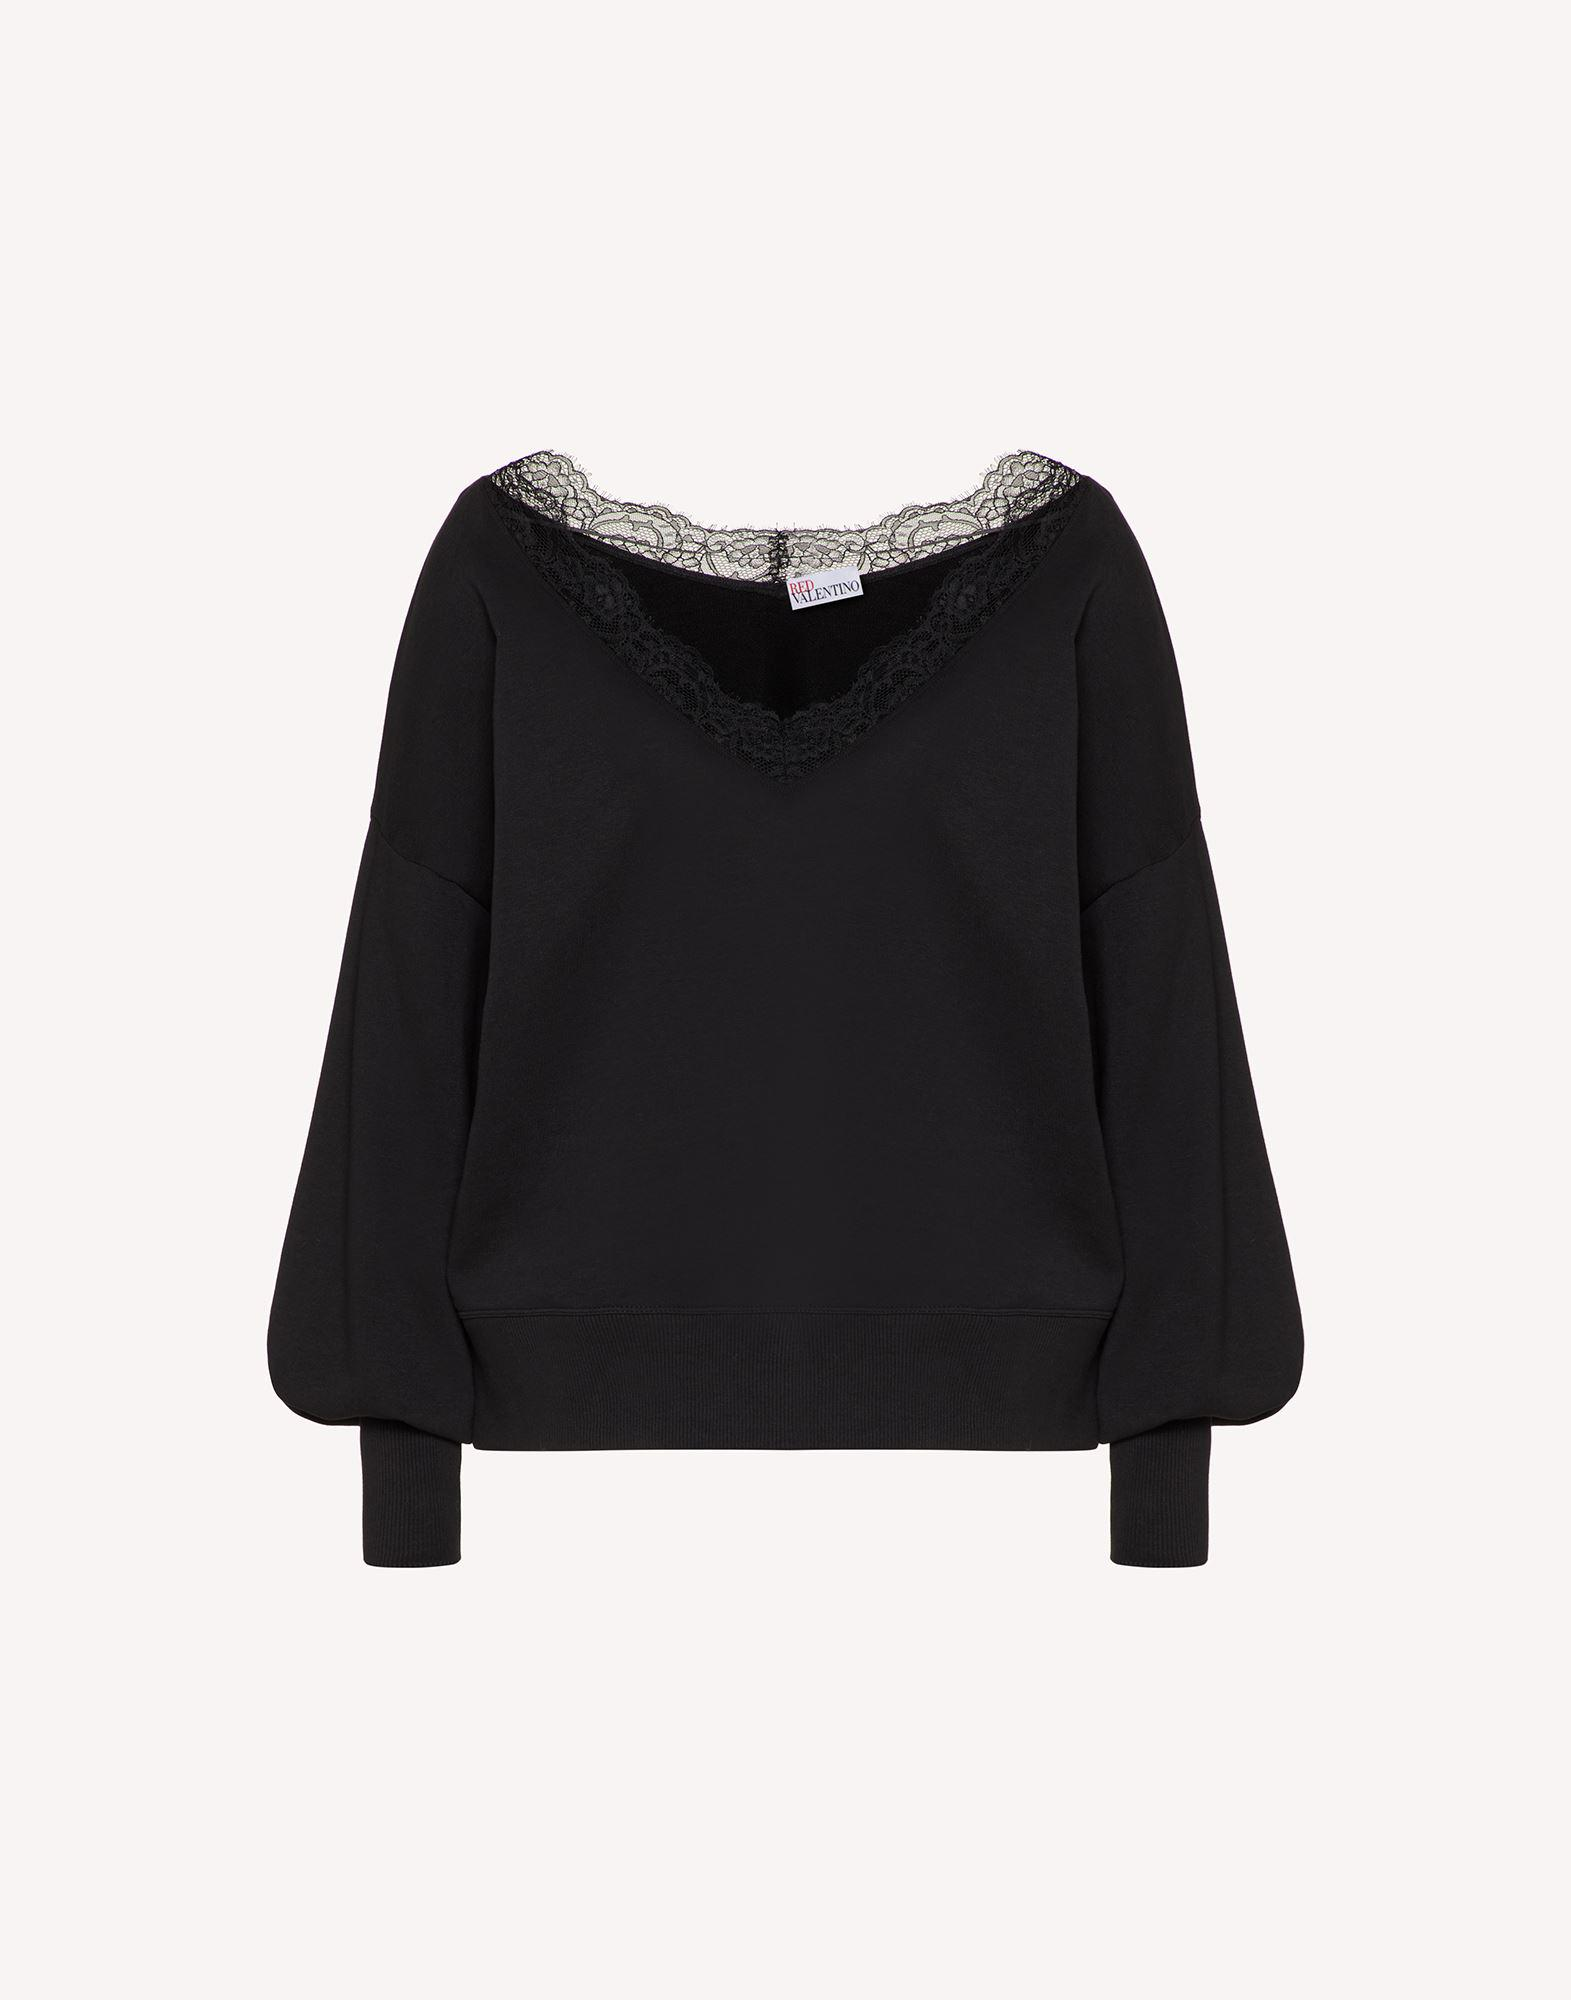 SWEATSHIRT WITH LACE RIBBONS 4